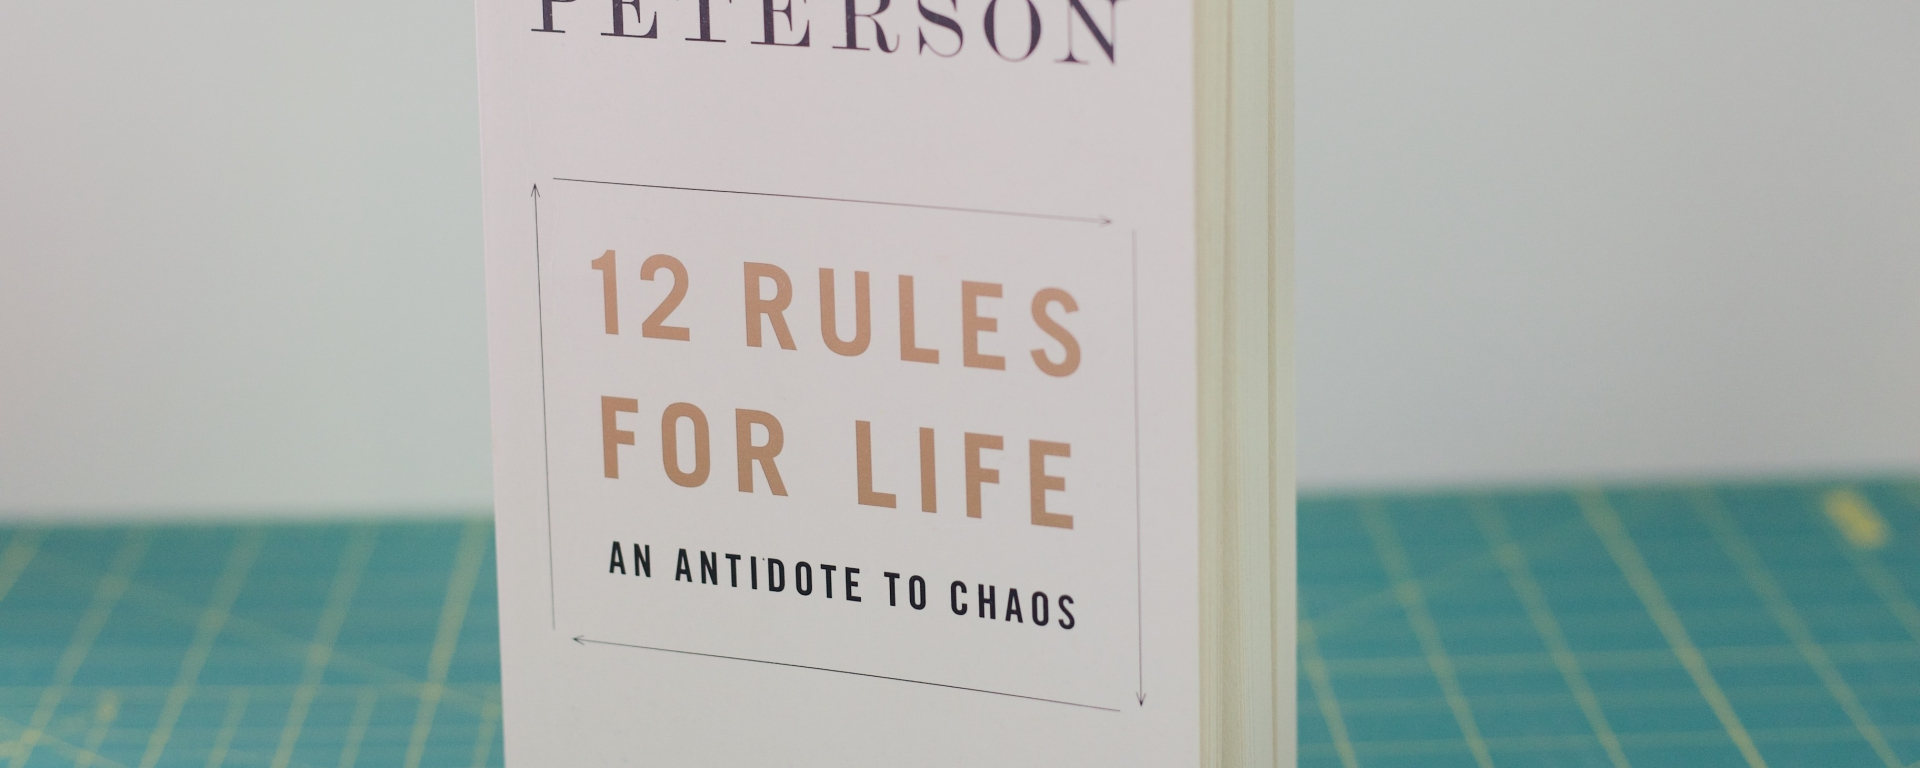 An image of a book titled '12 Rules for Life' by Jordan Peterson.